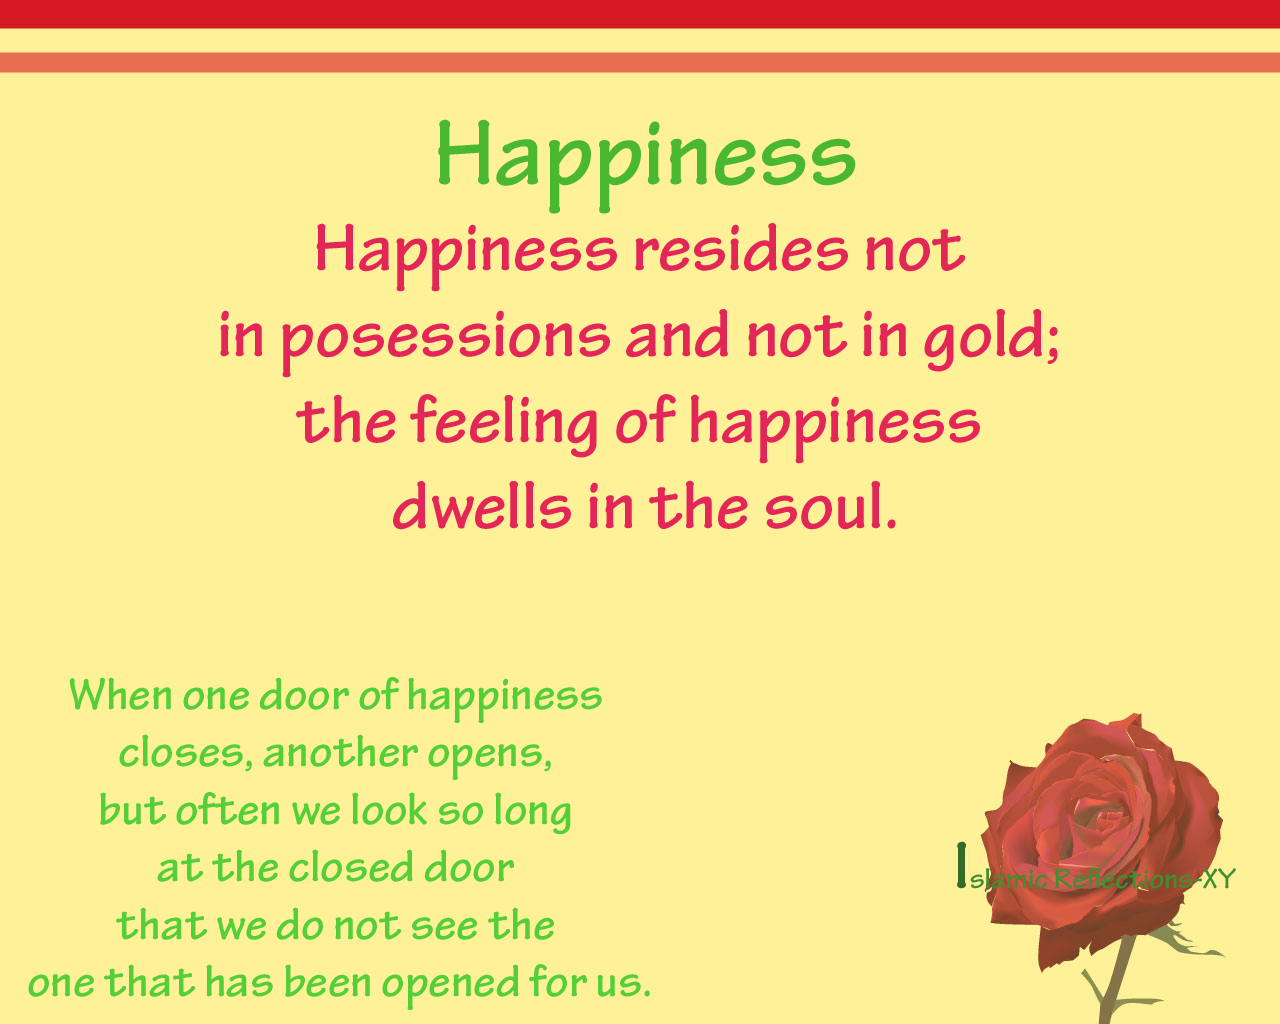 Happiness Resides Not In Posessions And Not In Gold; The Feeling Of Happiness Dwells In The Soul